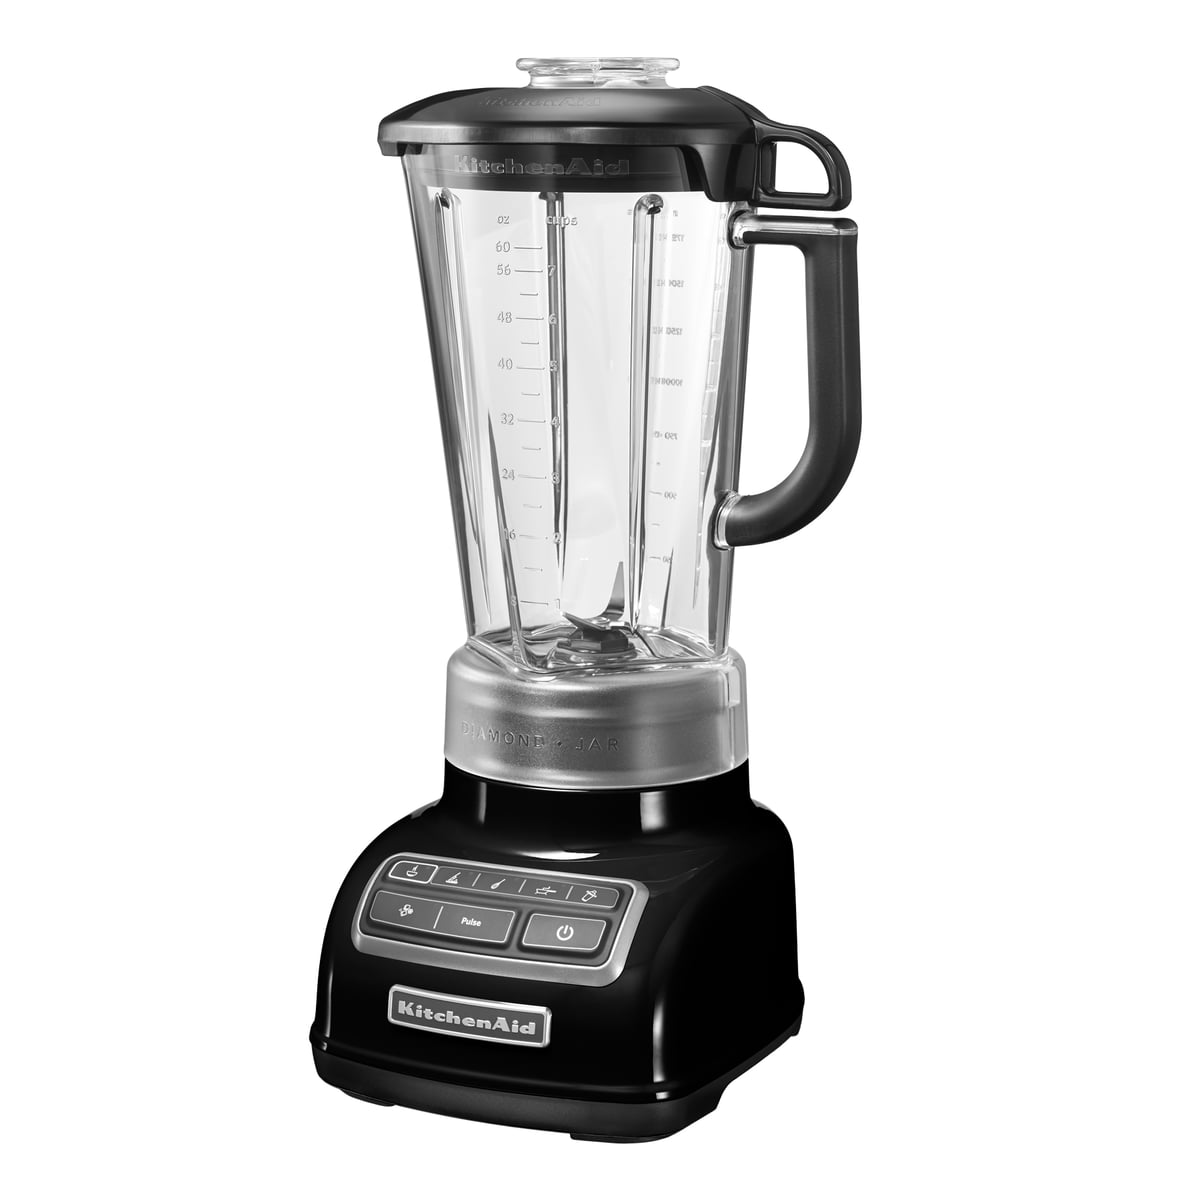 KitchenAid   Blender KitchenAid In Onyx Black